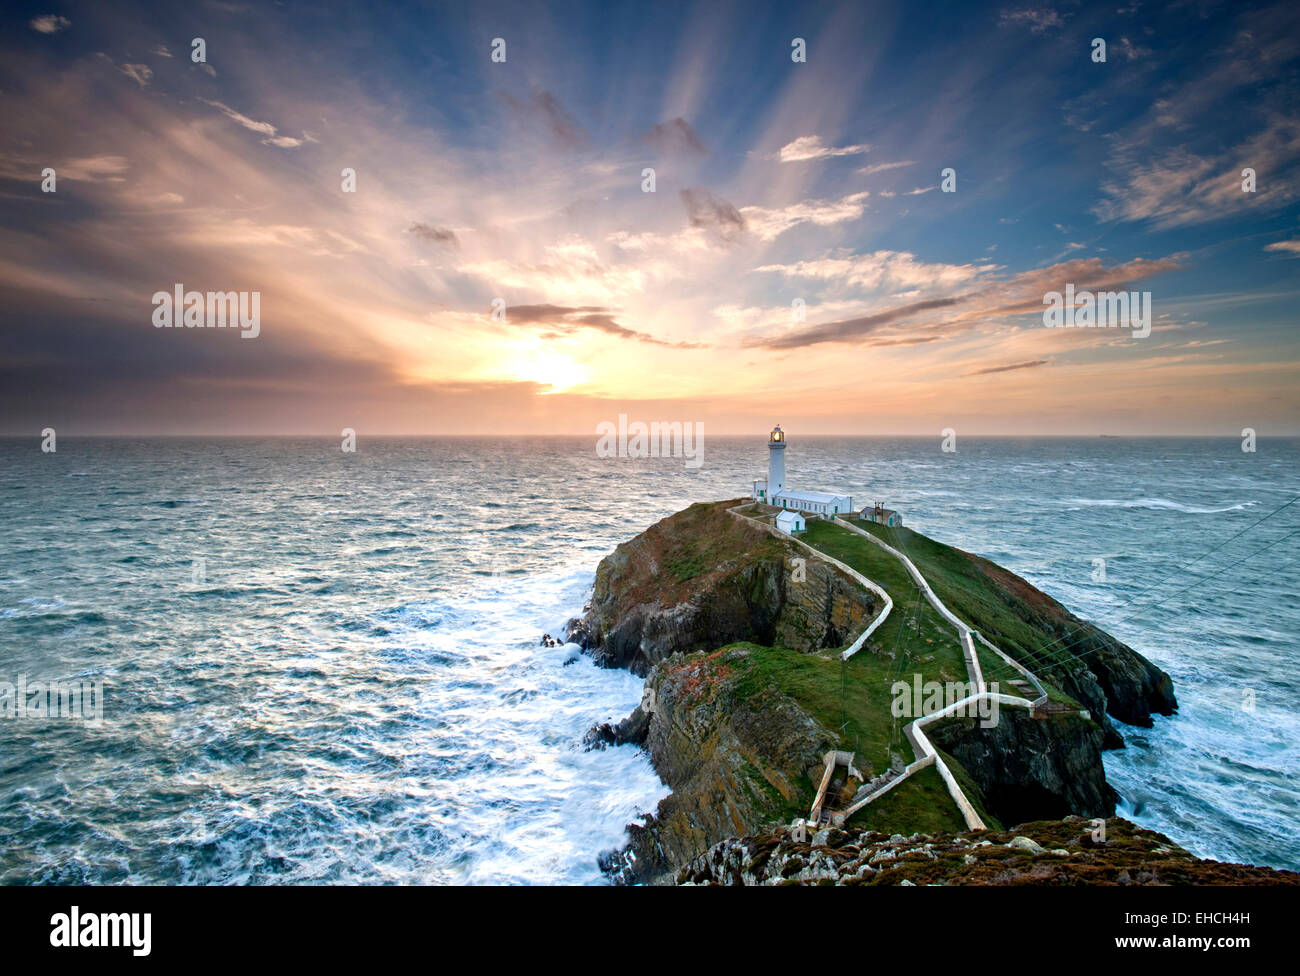 Crepuscular Rays Over South Stack Lighthouse at Sunset, Anglesey, North Wales, UK - Stock Image